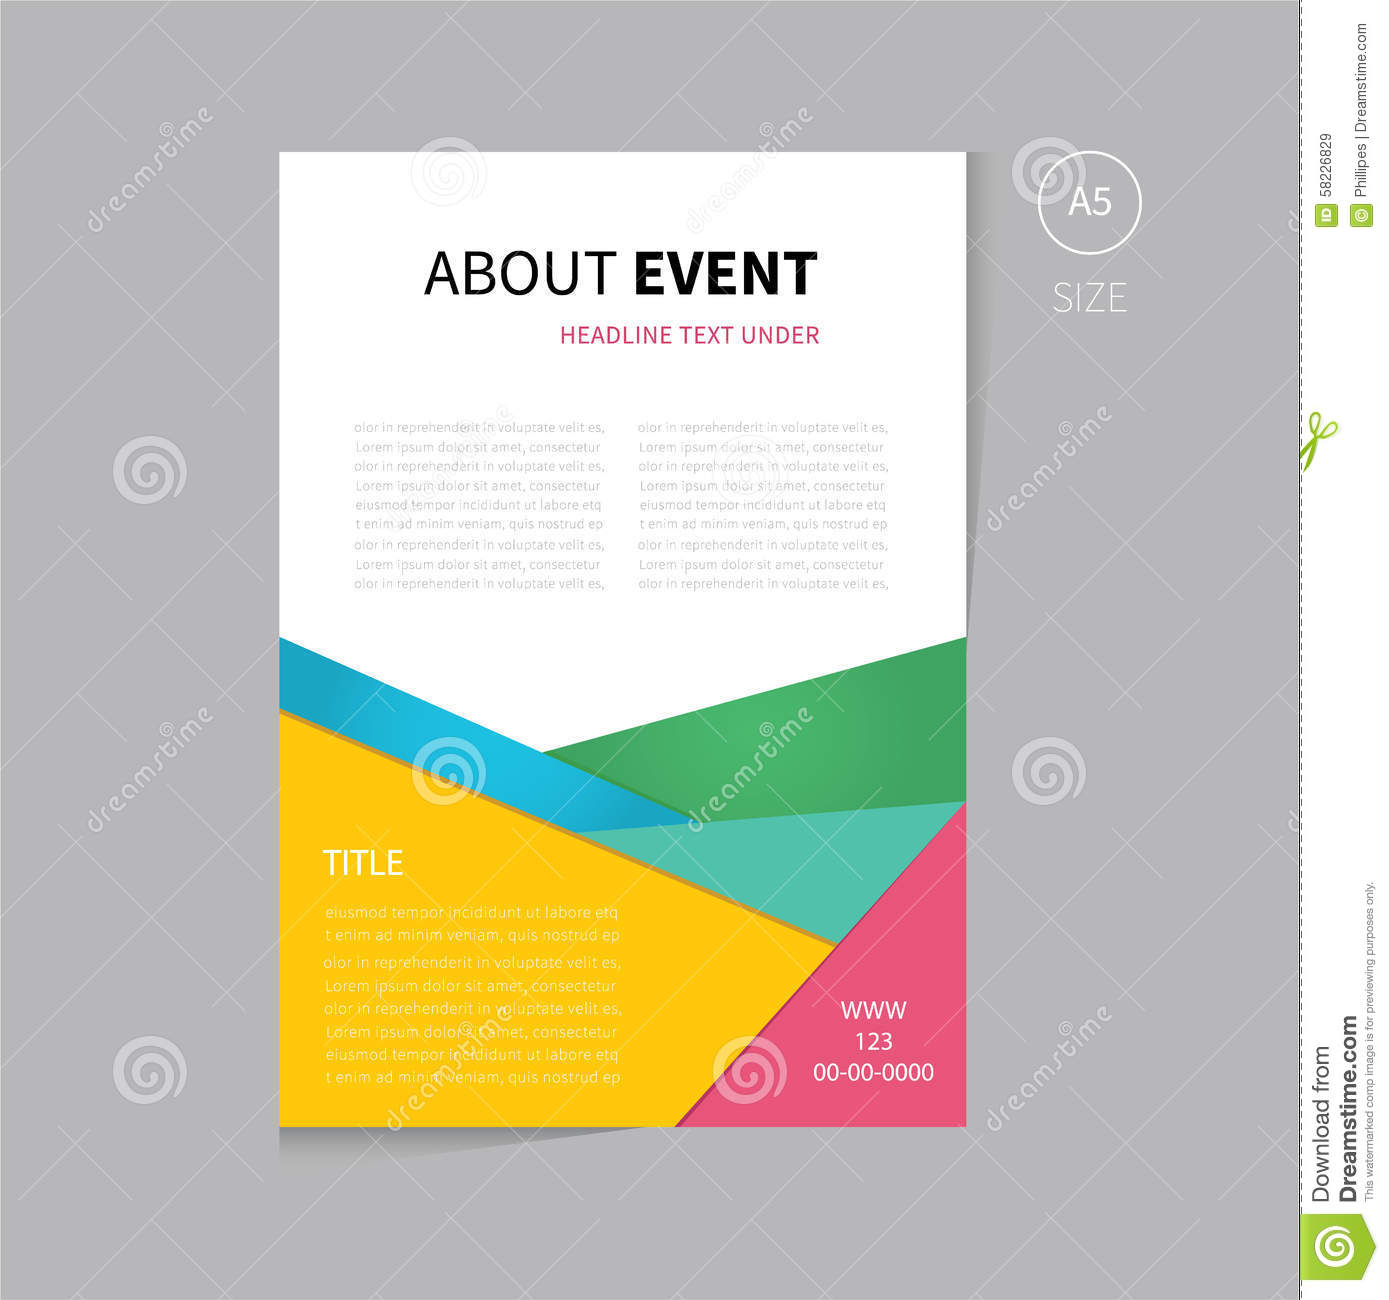 Free Presentation Flyer Template Dolap Magnetband Co